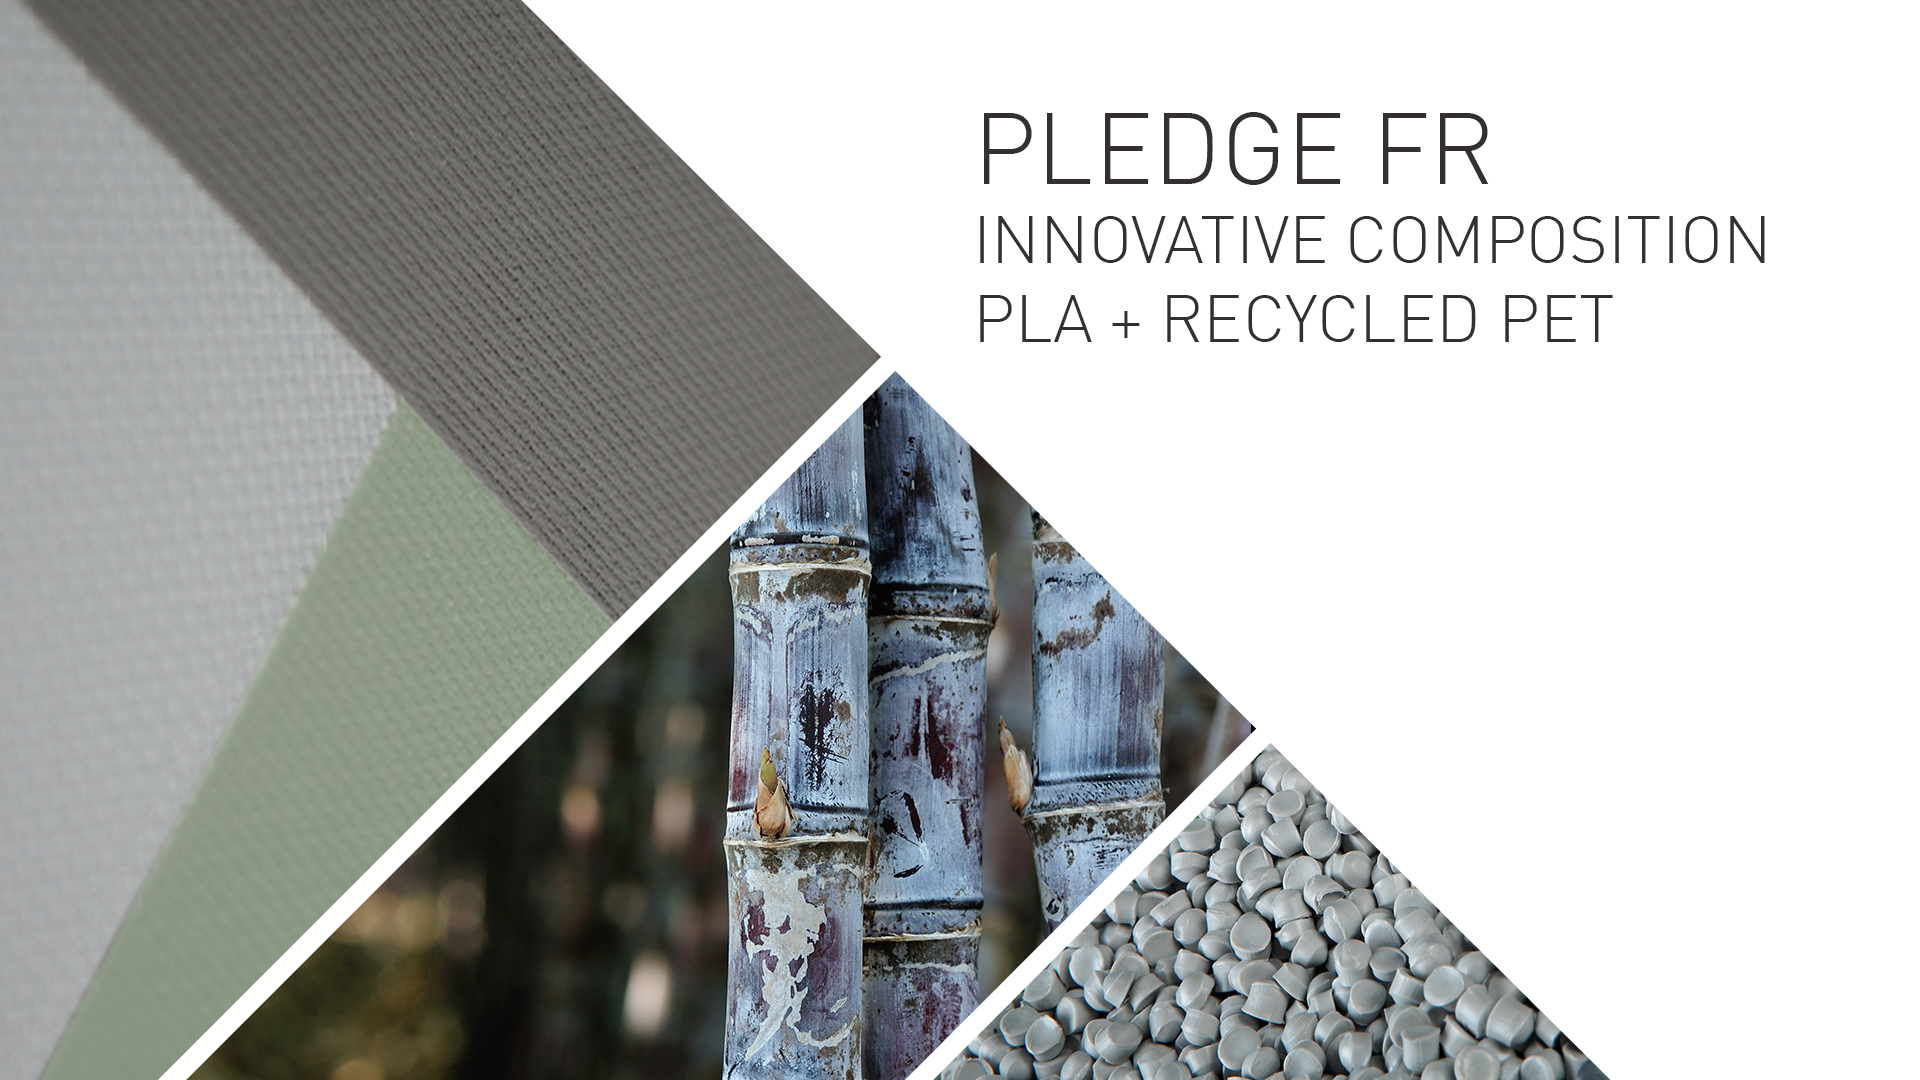 Pledge, Innovation & Environment Protection, C2C Silver